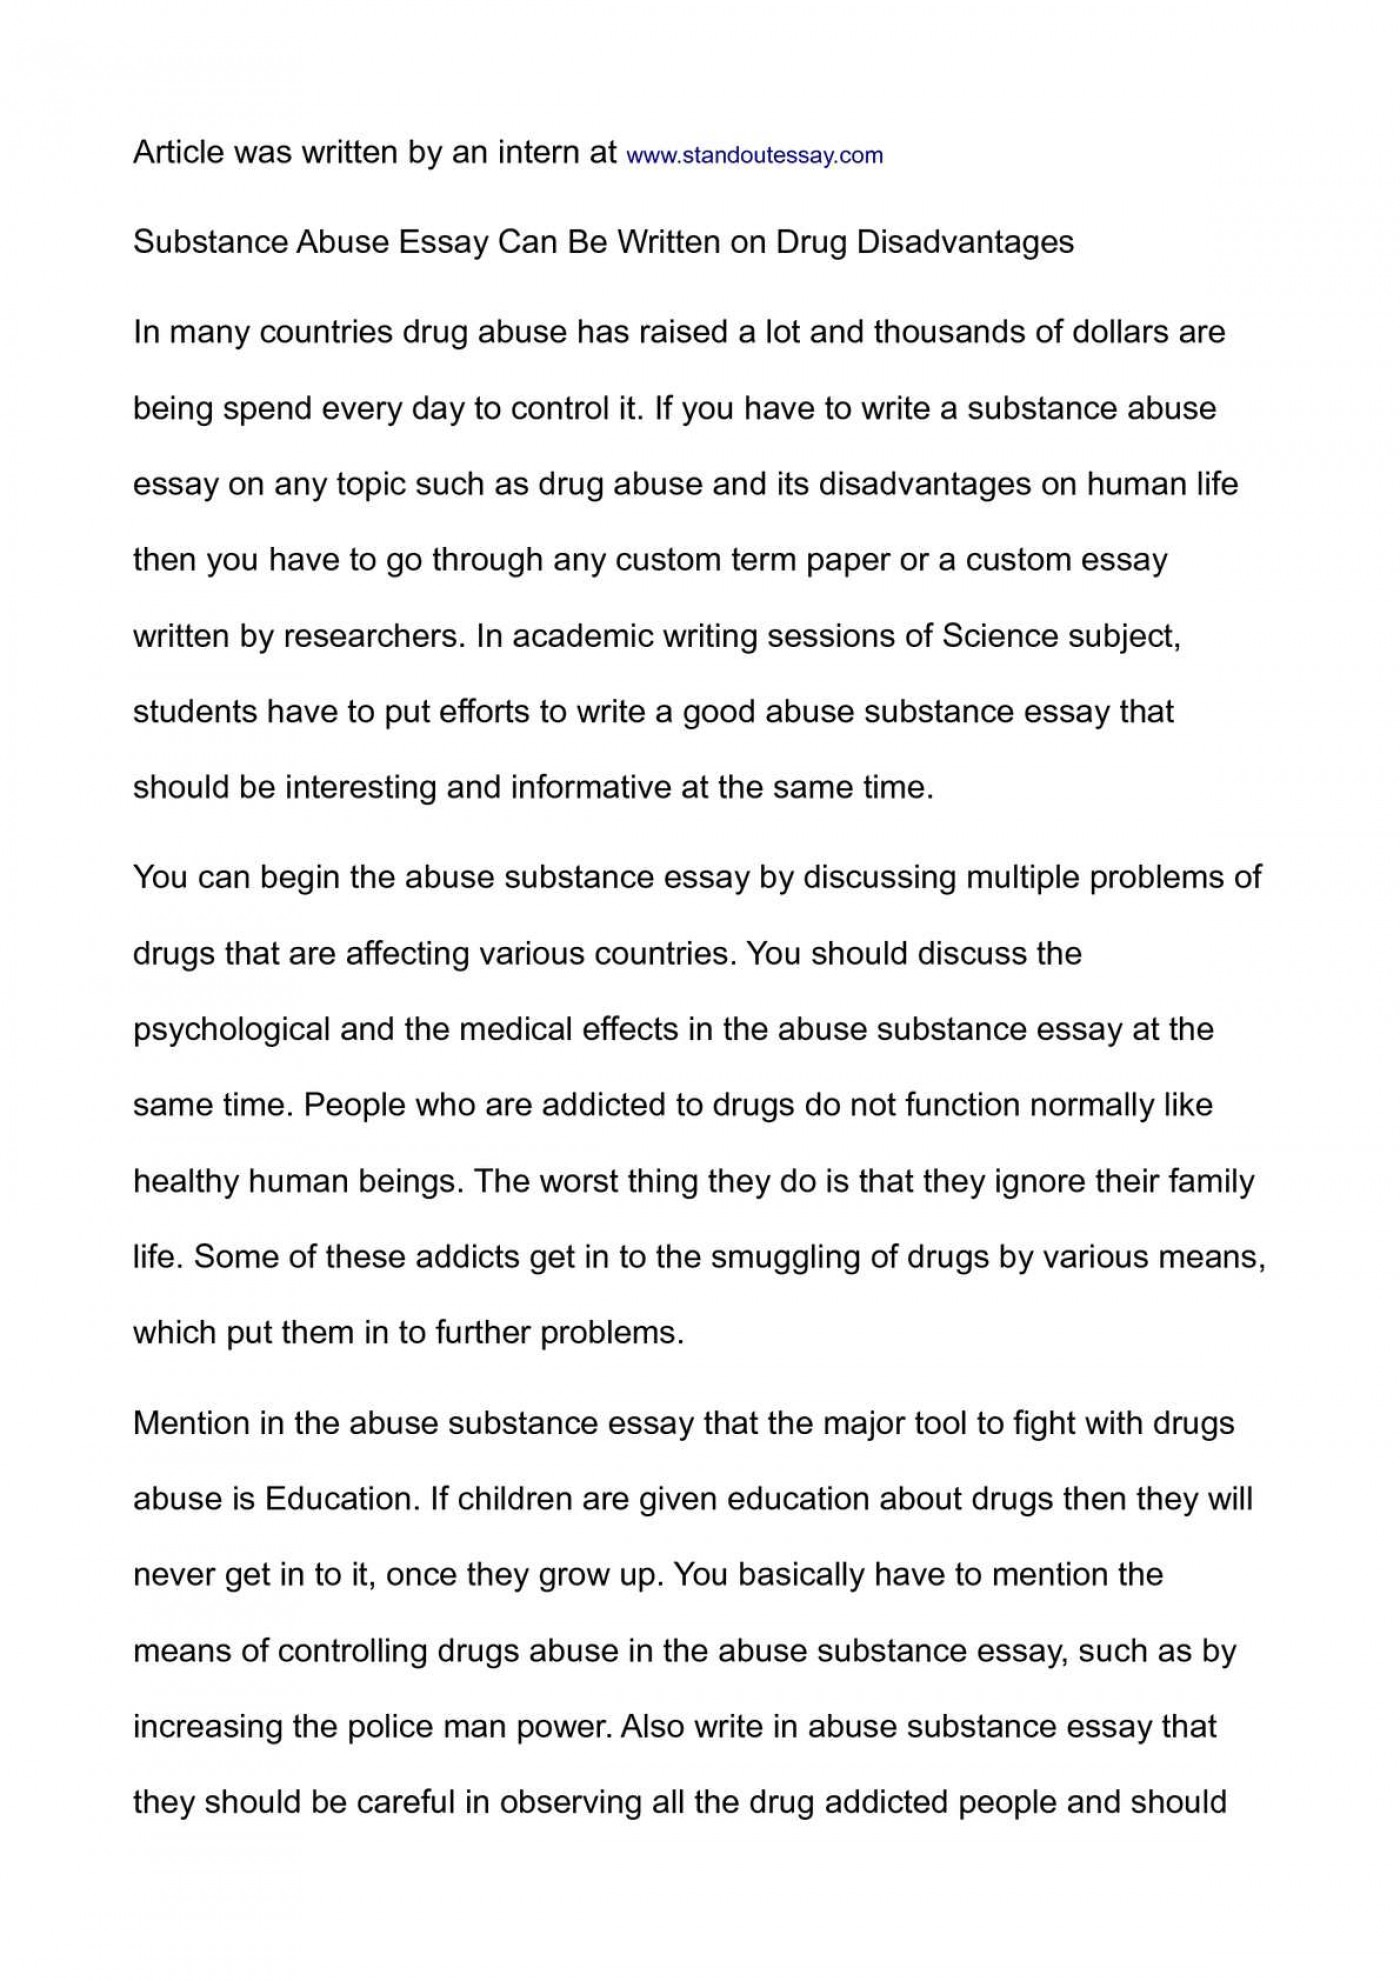 002 Essay Example P1 Drug Remarkable Abuse Questions Conclusion In English Pdf 1400